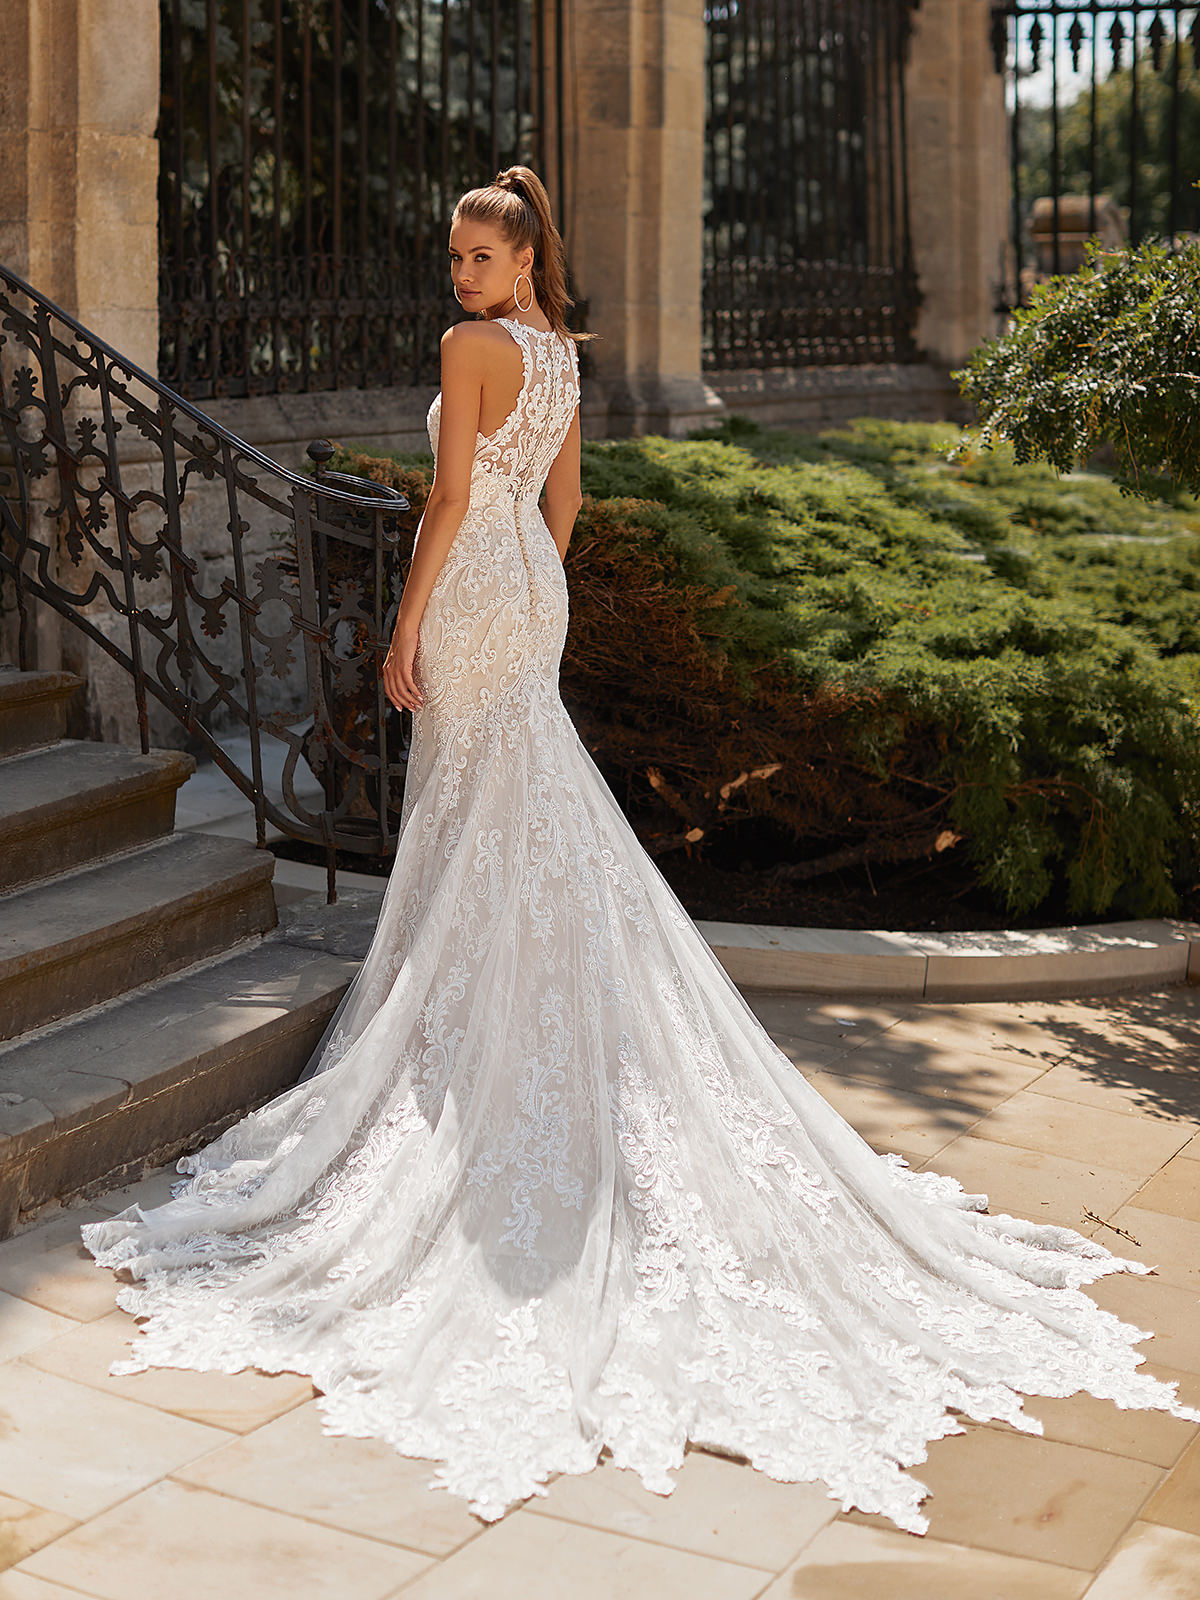 Designer Wedding Dresses by Moonlight Couture 2022 Bridal Collection - H1489